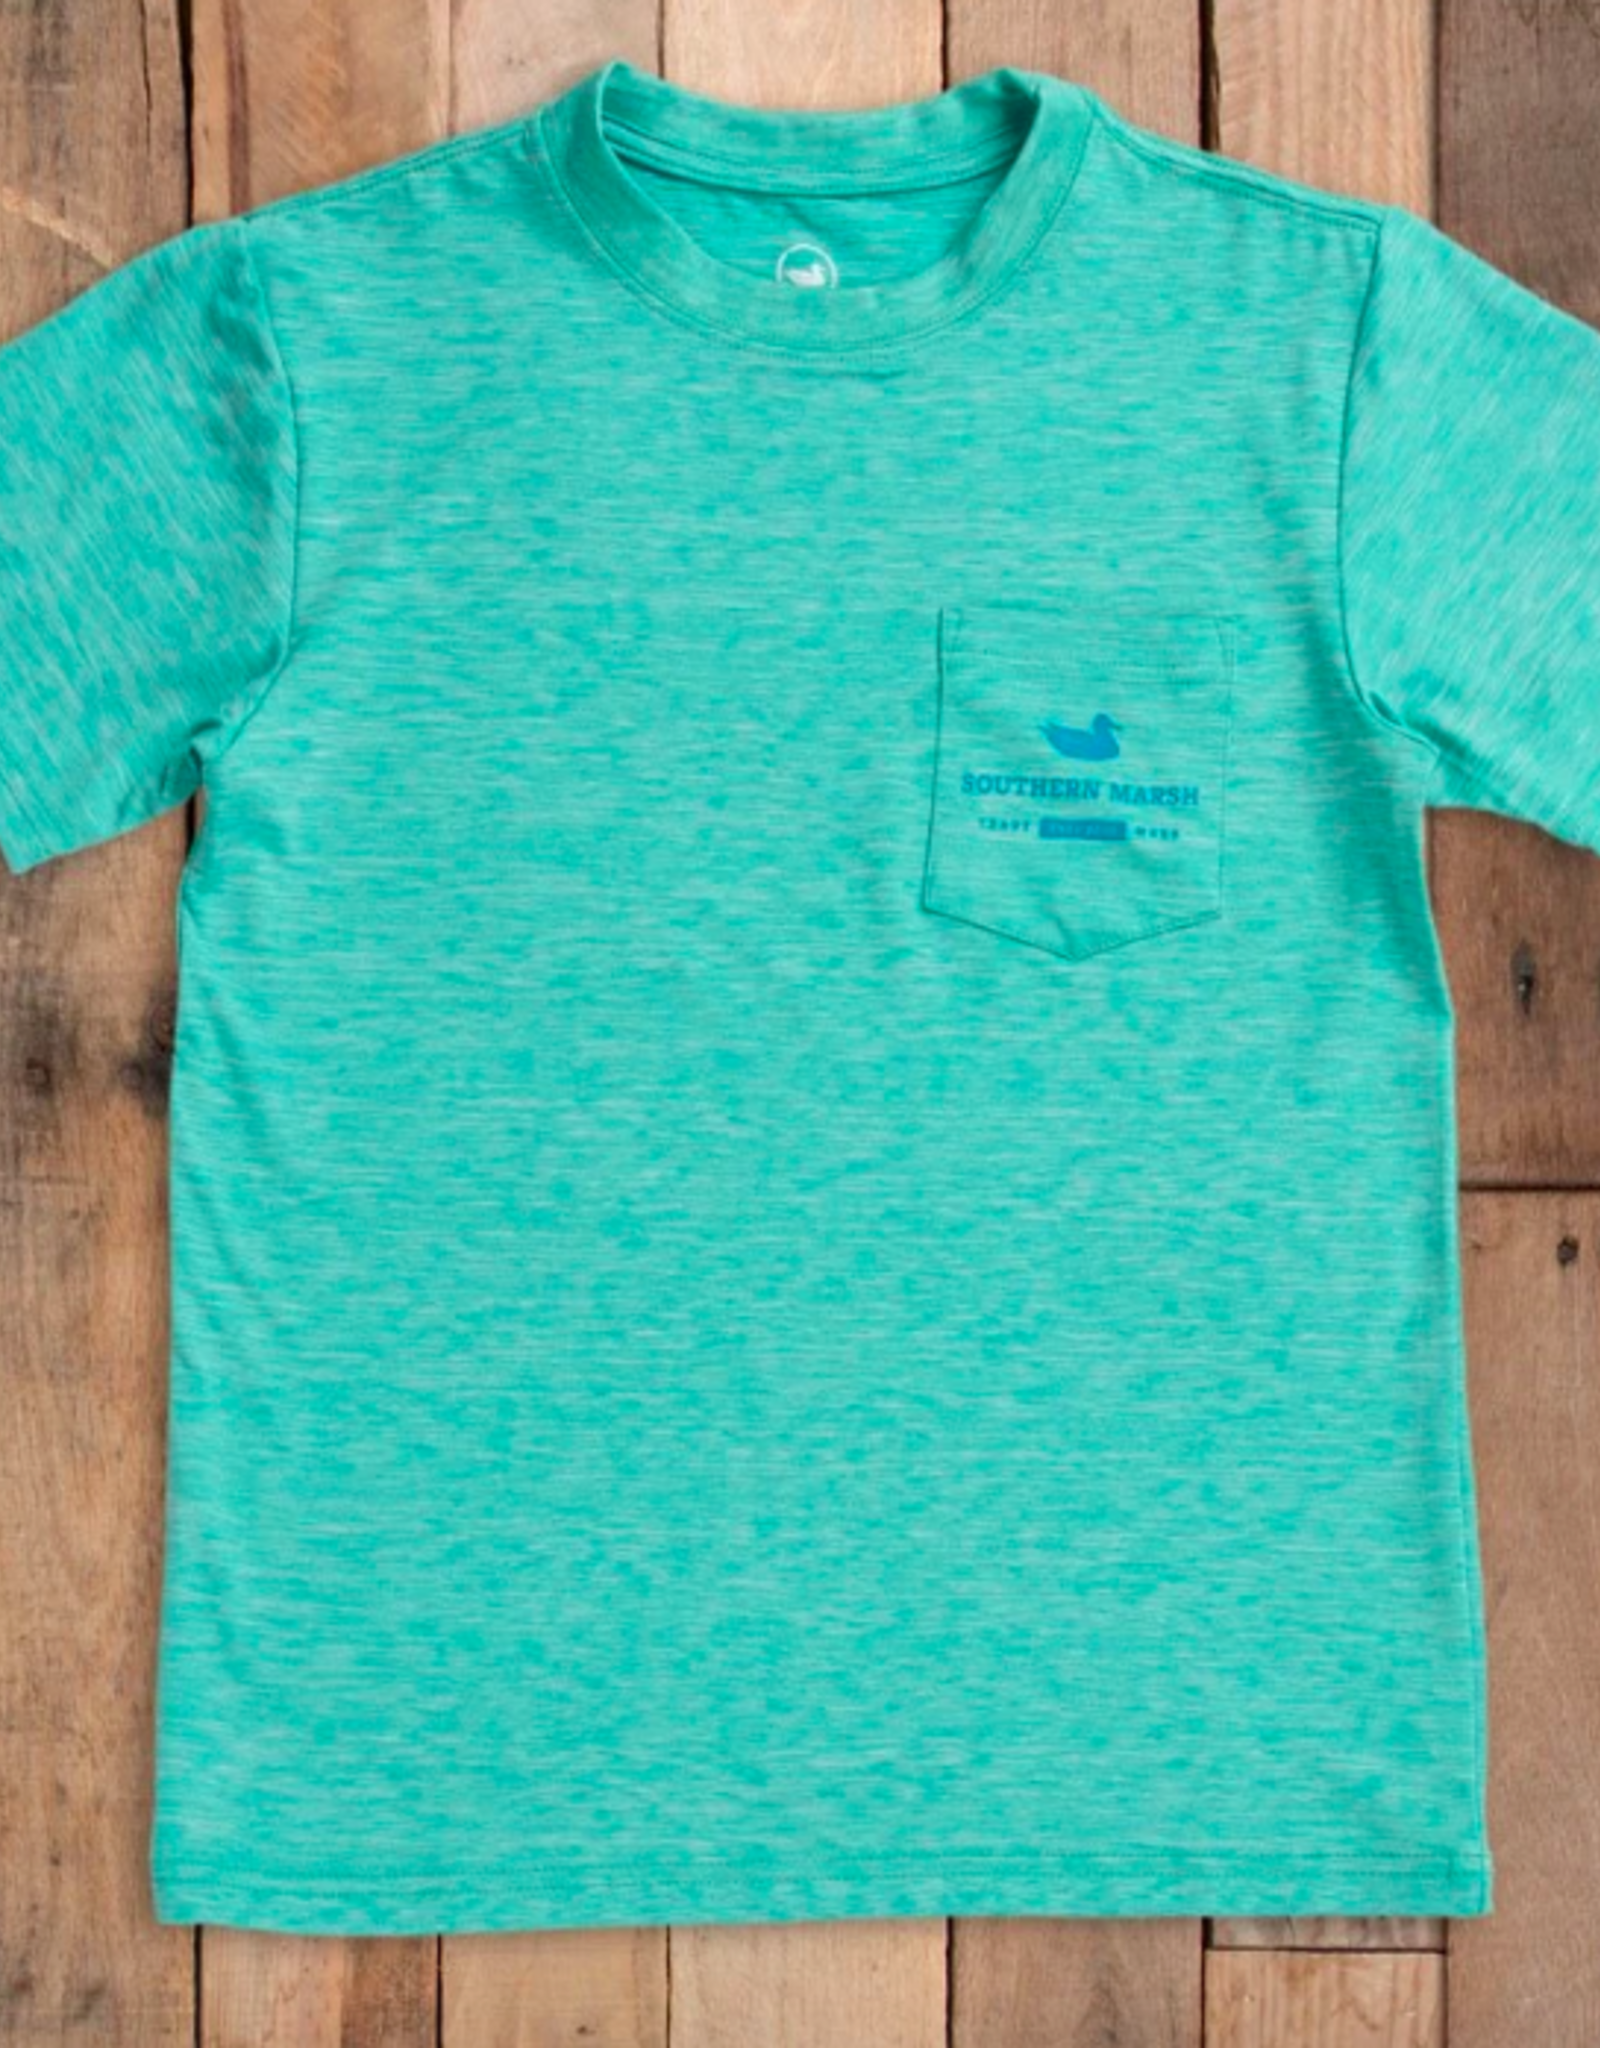 Southern Marsh Youth Field Tech Heathered Perf. Tee